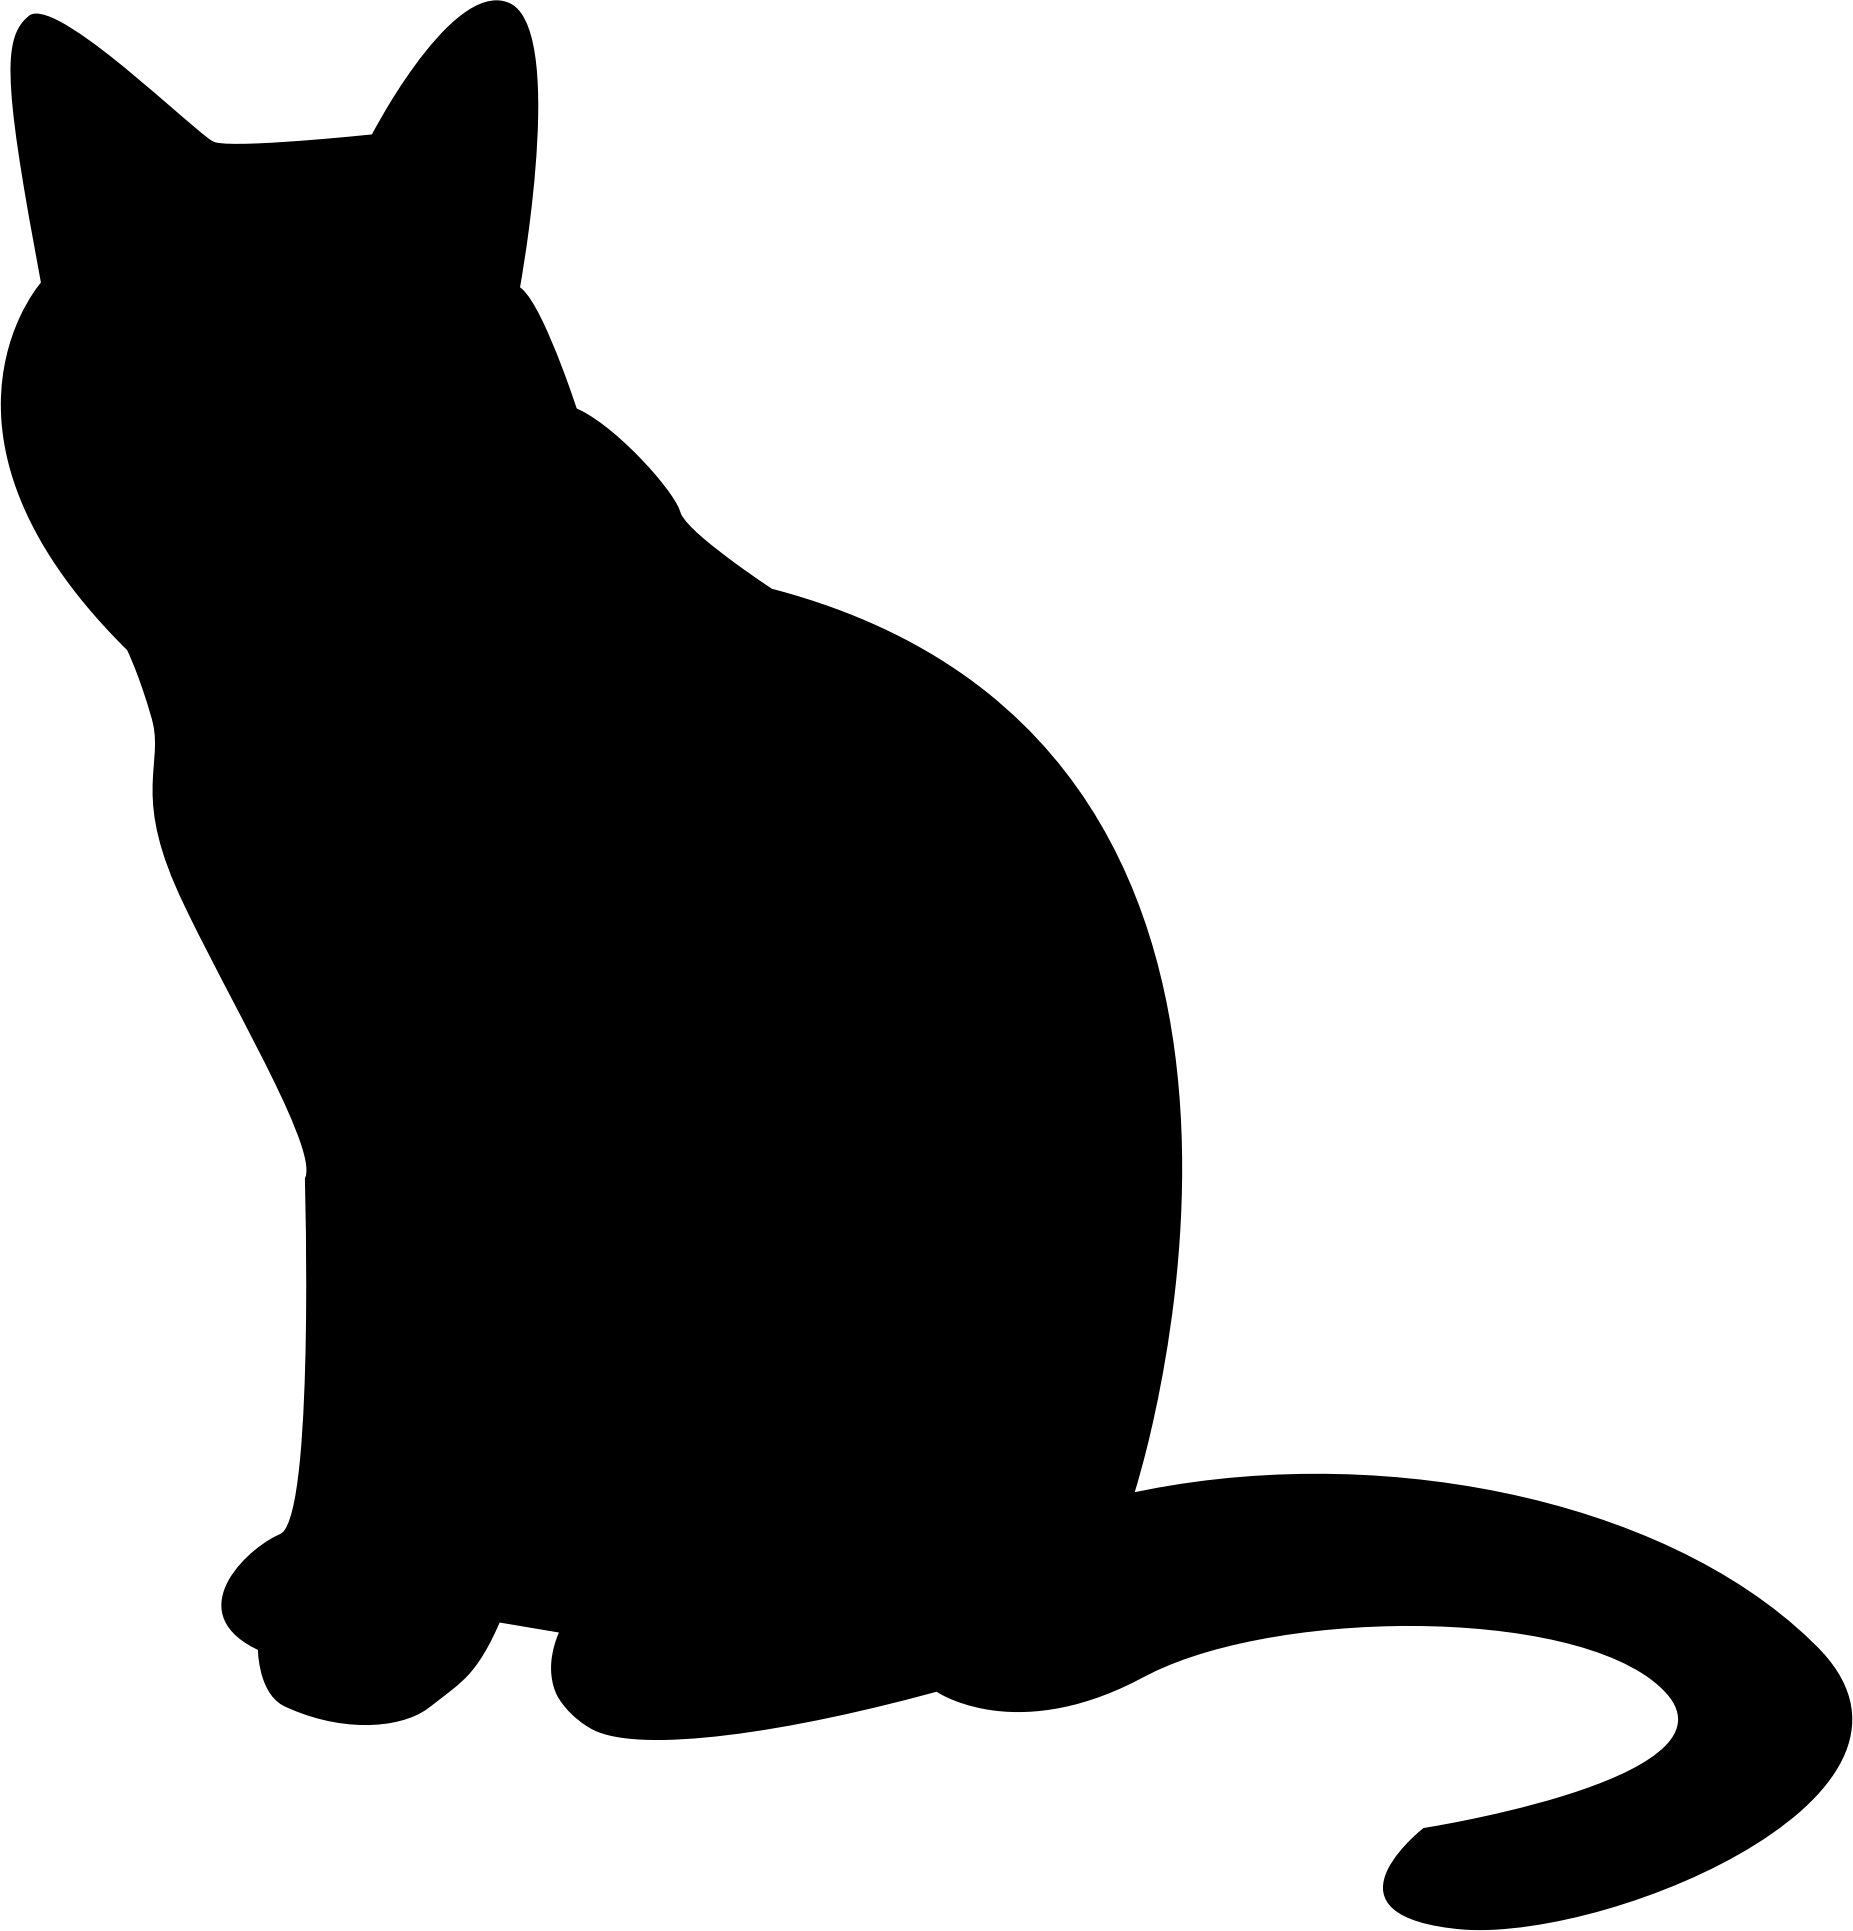 Silhouette png stickpng. Clipart cat transparent background